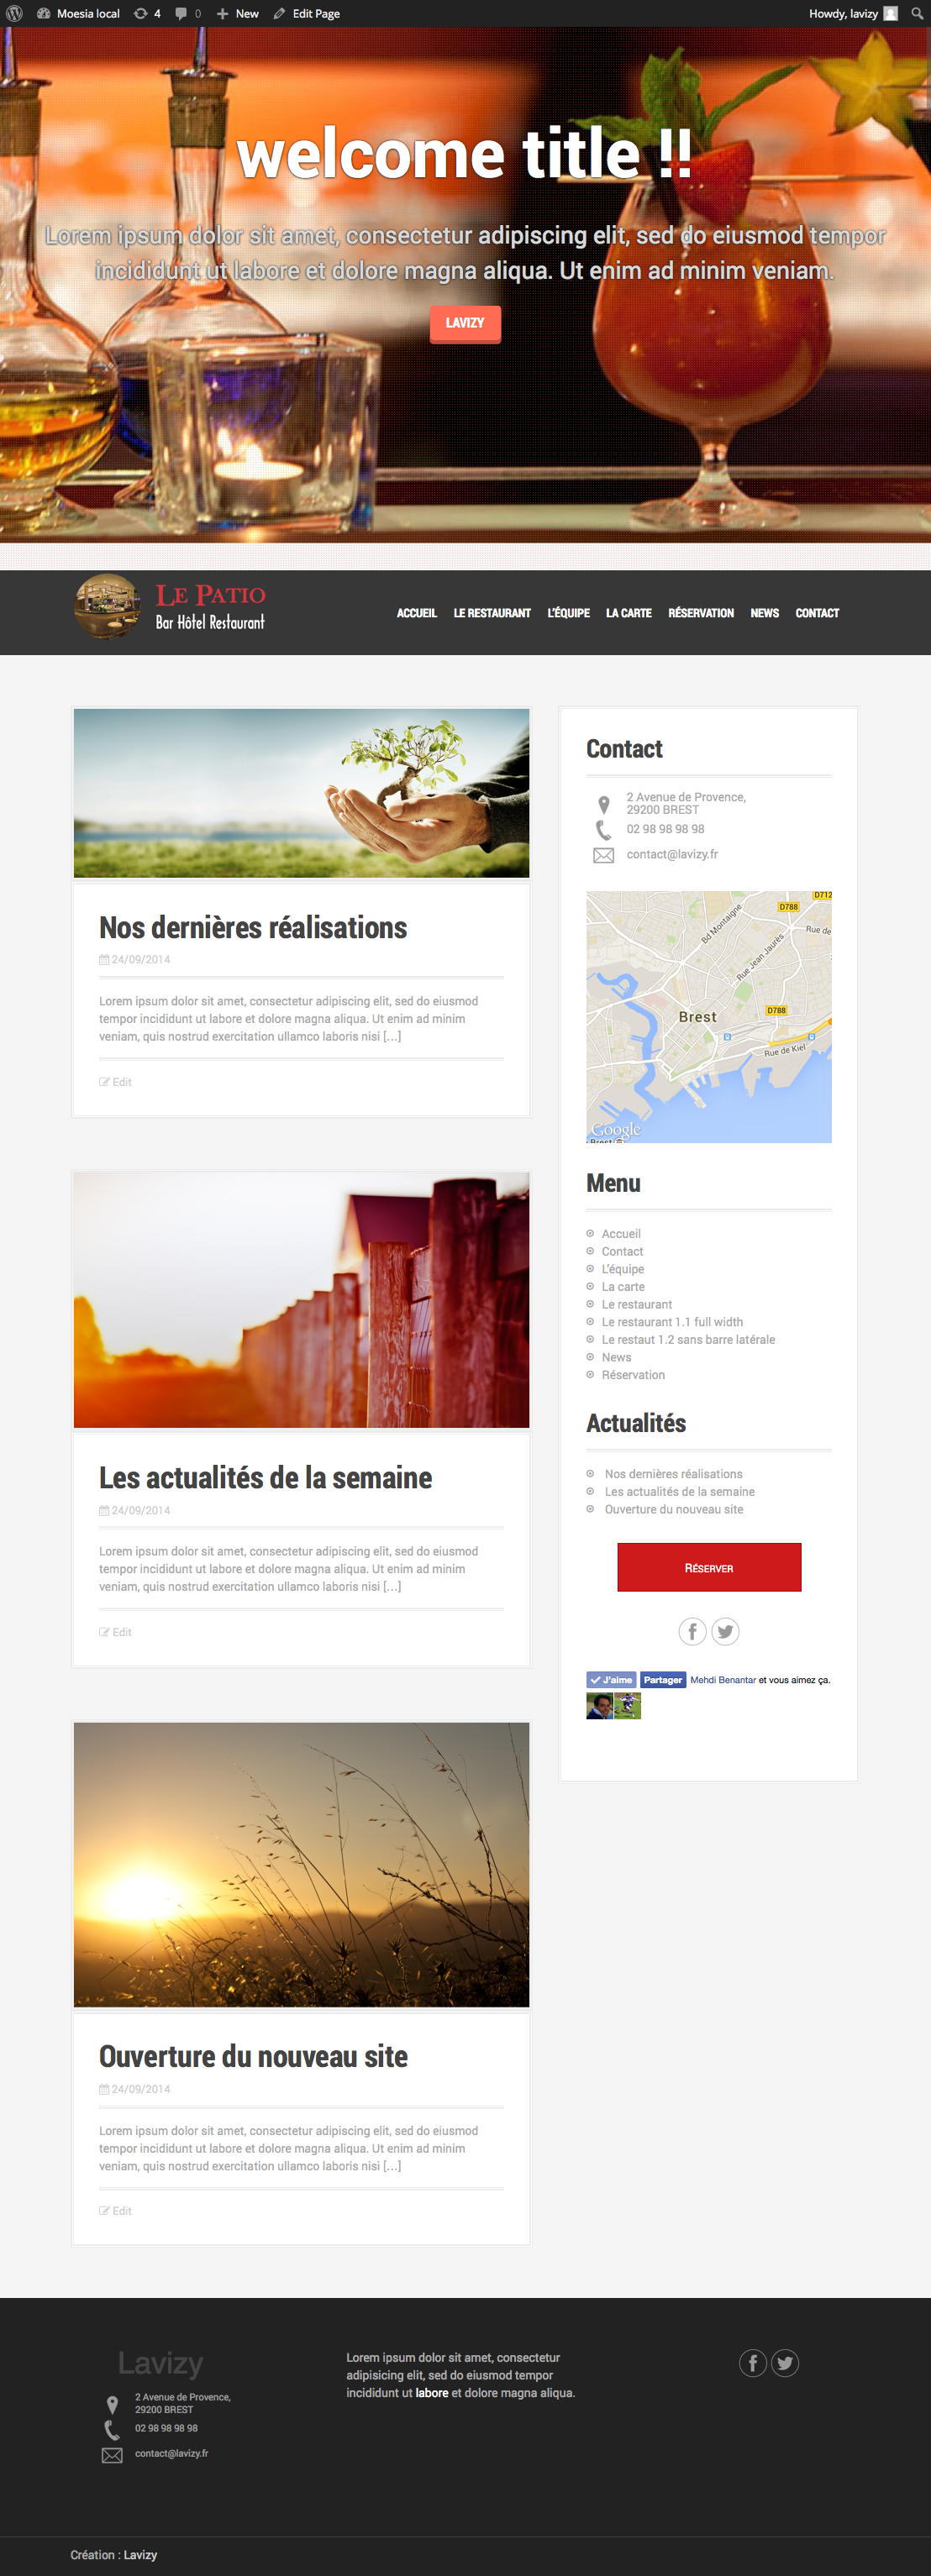 News | Moesia local | Just another Lavizy site 2014-10-20 14-42-45